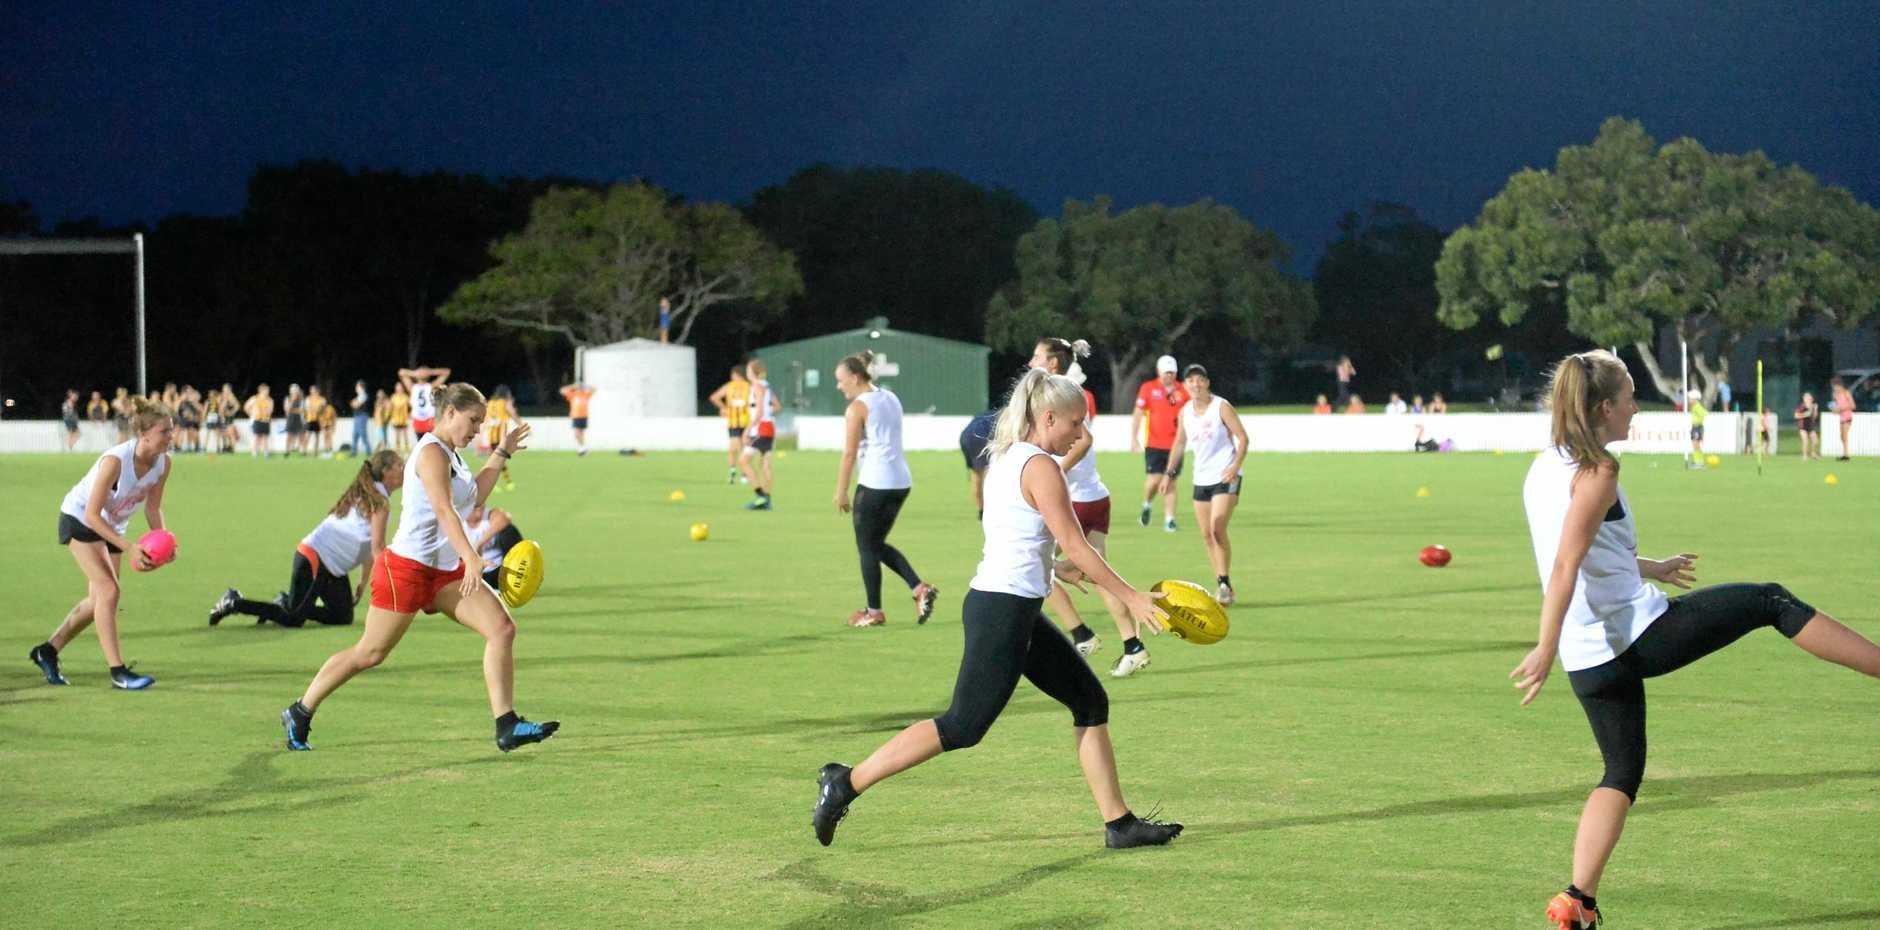 The Gold Coast Suns held an AFLX Competition for the region's Under-17 teams and a Get Set for 2020 Women's Talent ID session at Harrup Park on Thursday, March 1, 2018.